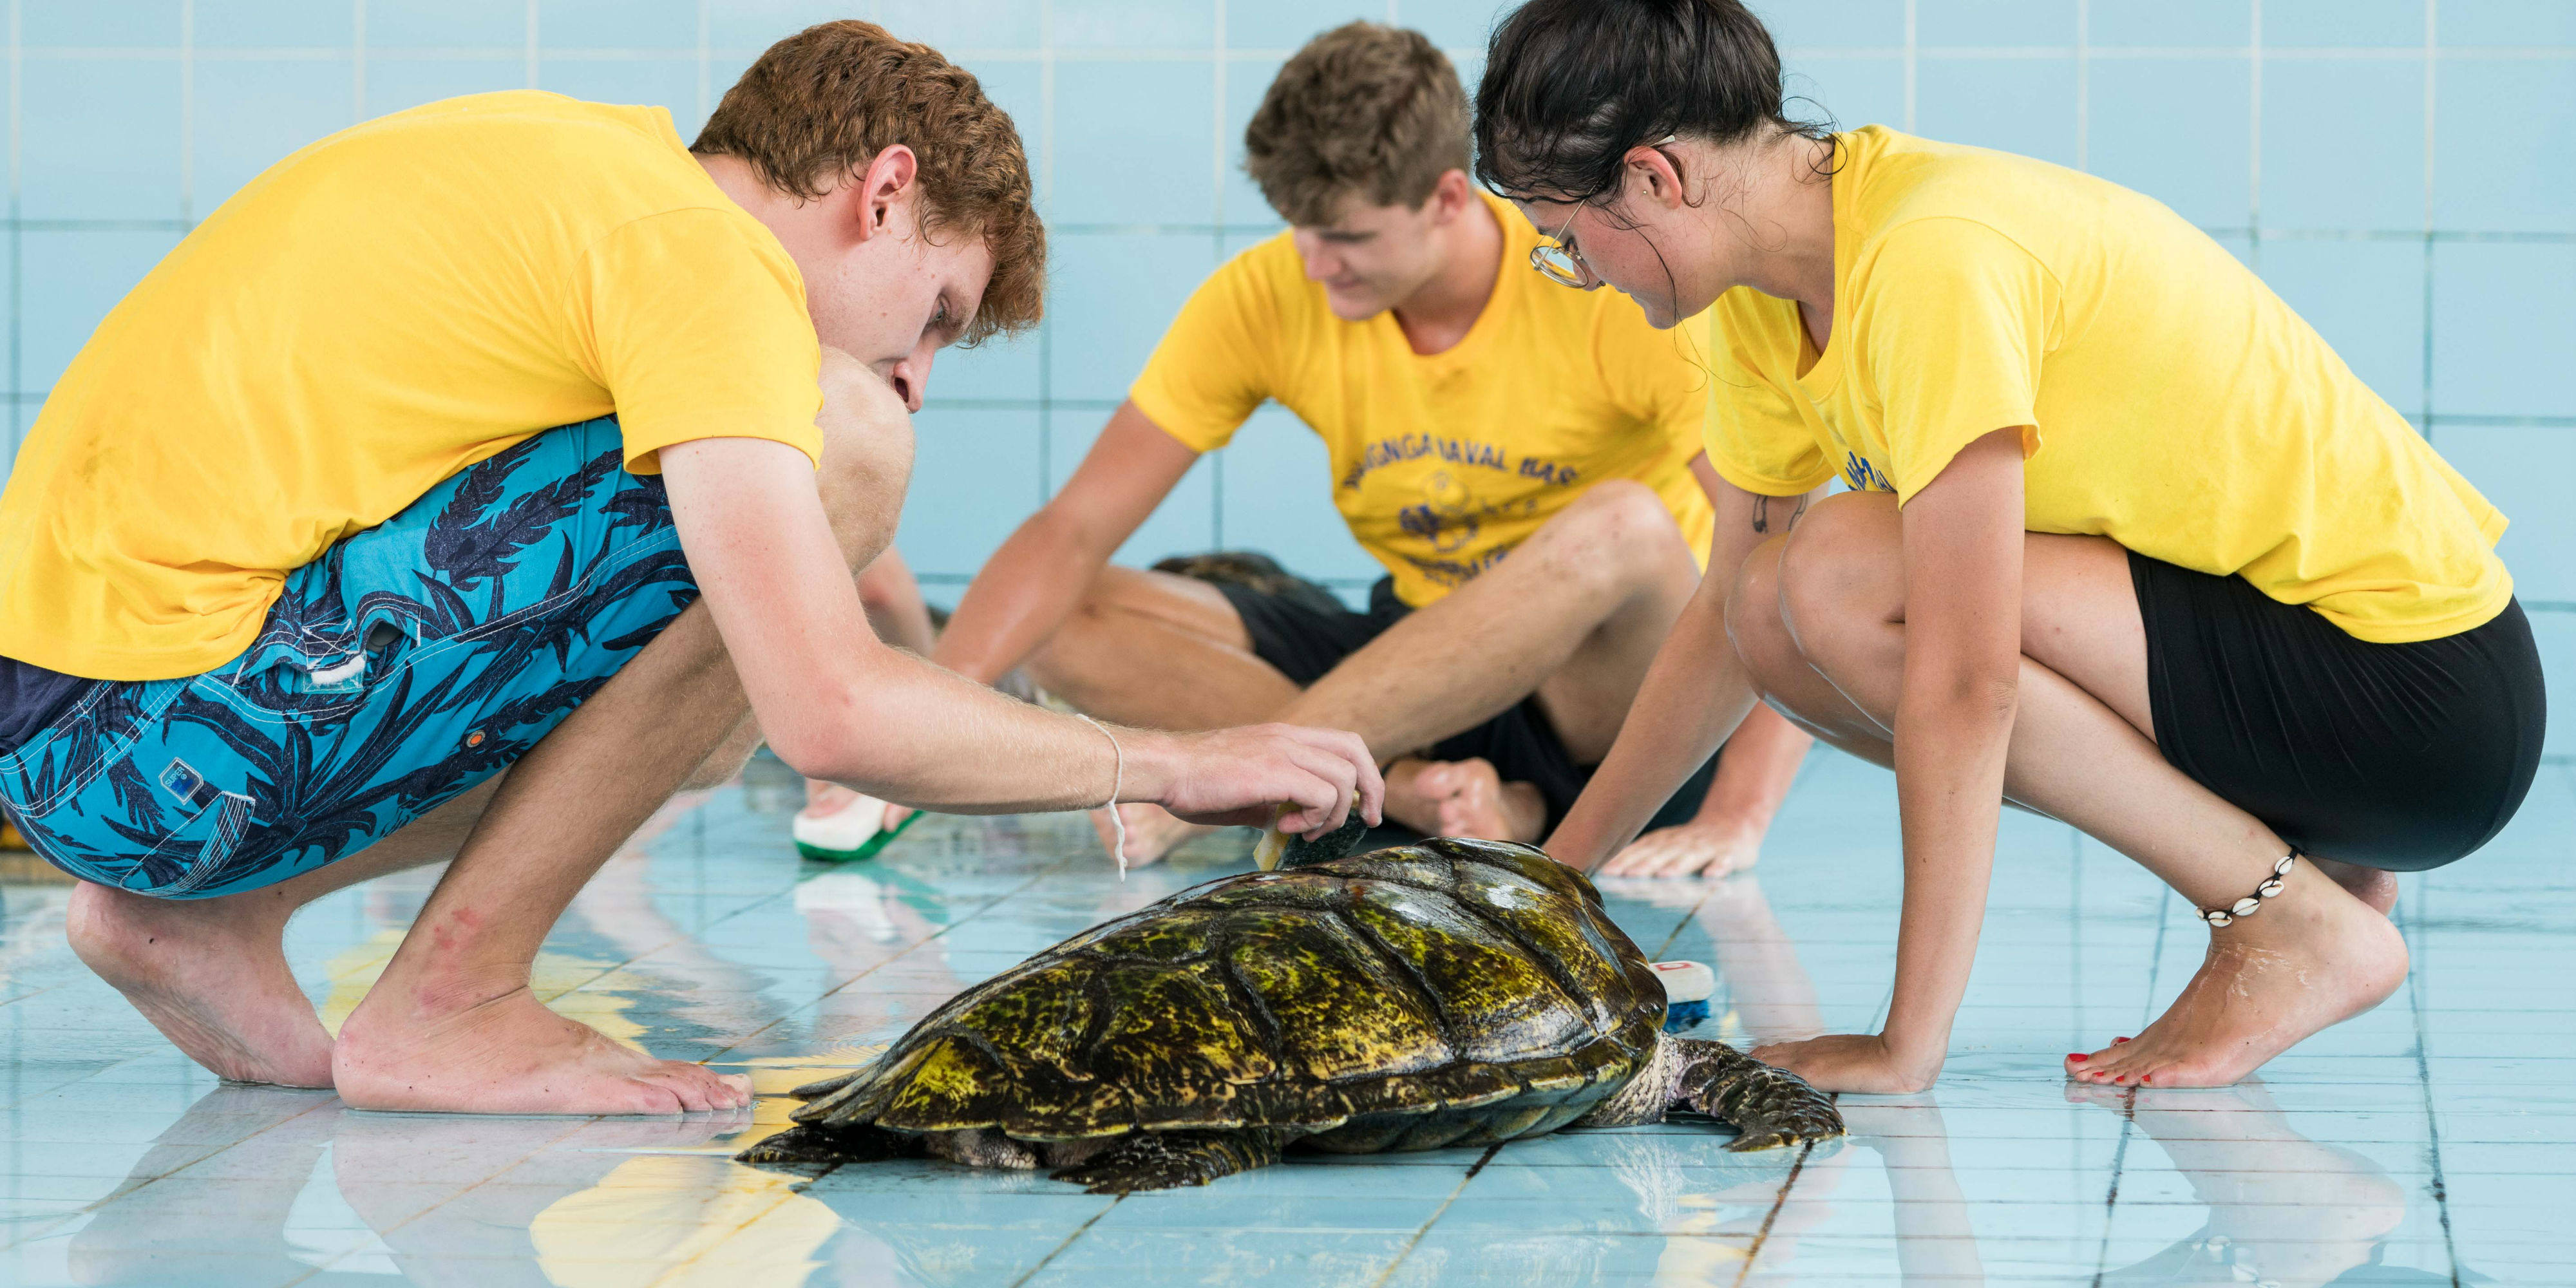 Participants carefully scrub the tank, and shell of a turtle | donate or volunteer